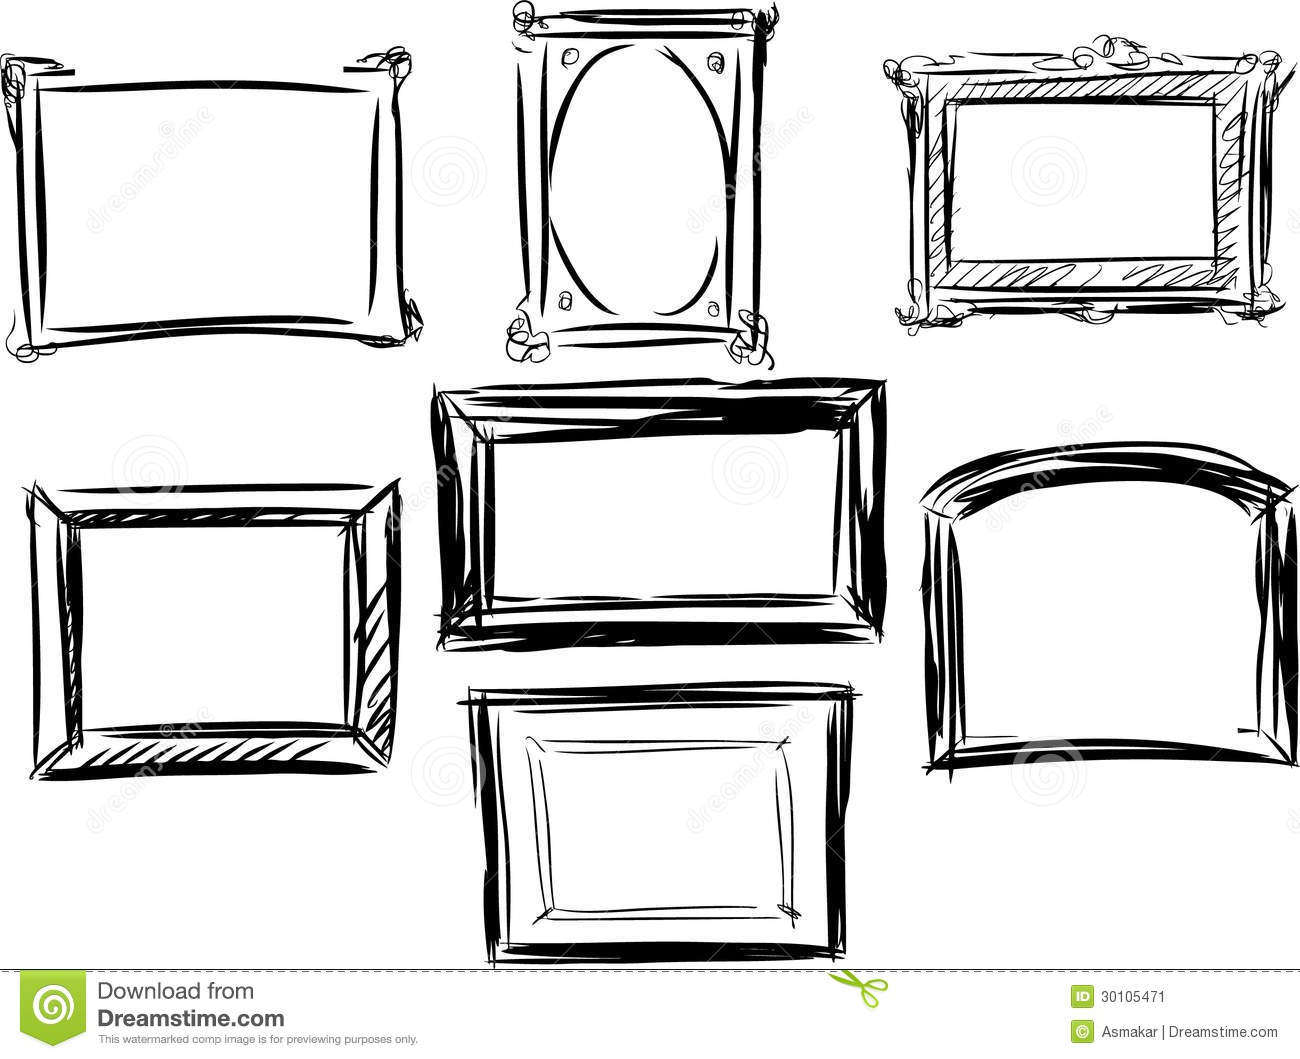 Frames stock image. Image of doodle, holiday, drawing ...